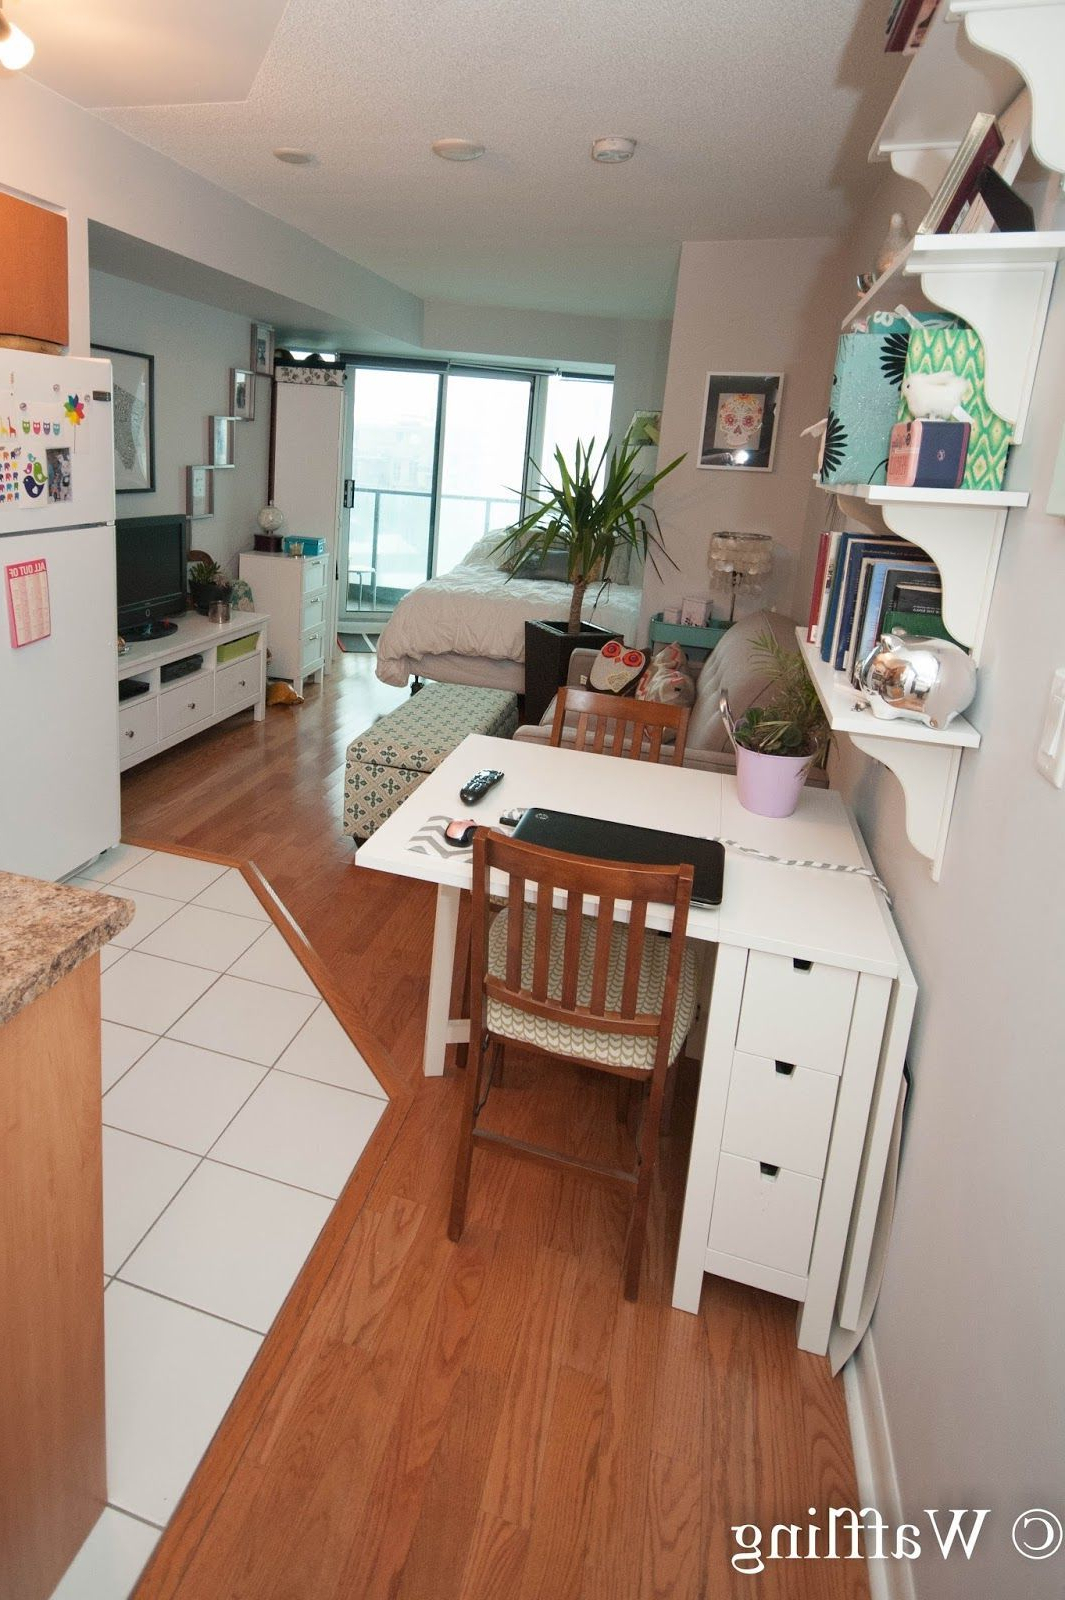 25 Amazing Small Kitchen Remodel Ideas That Perfect For